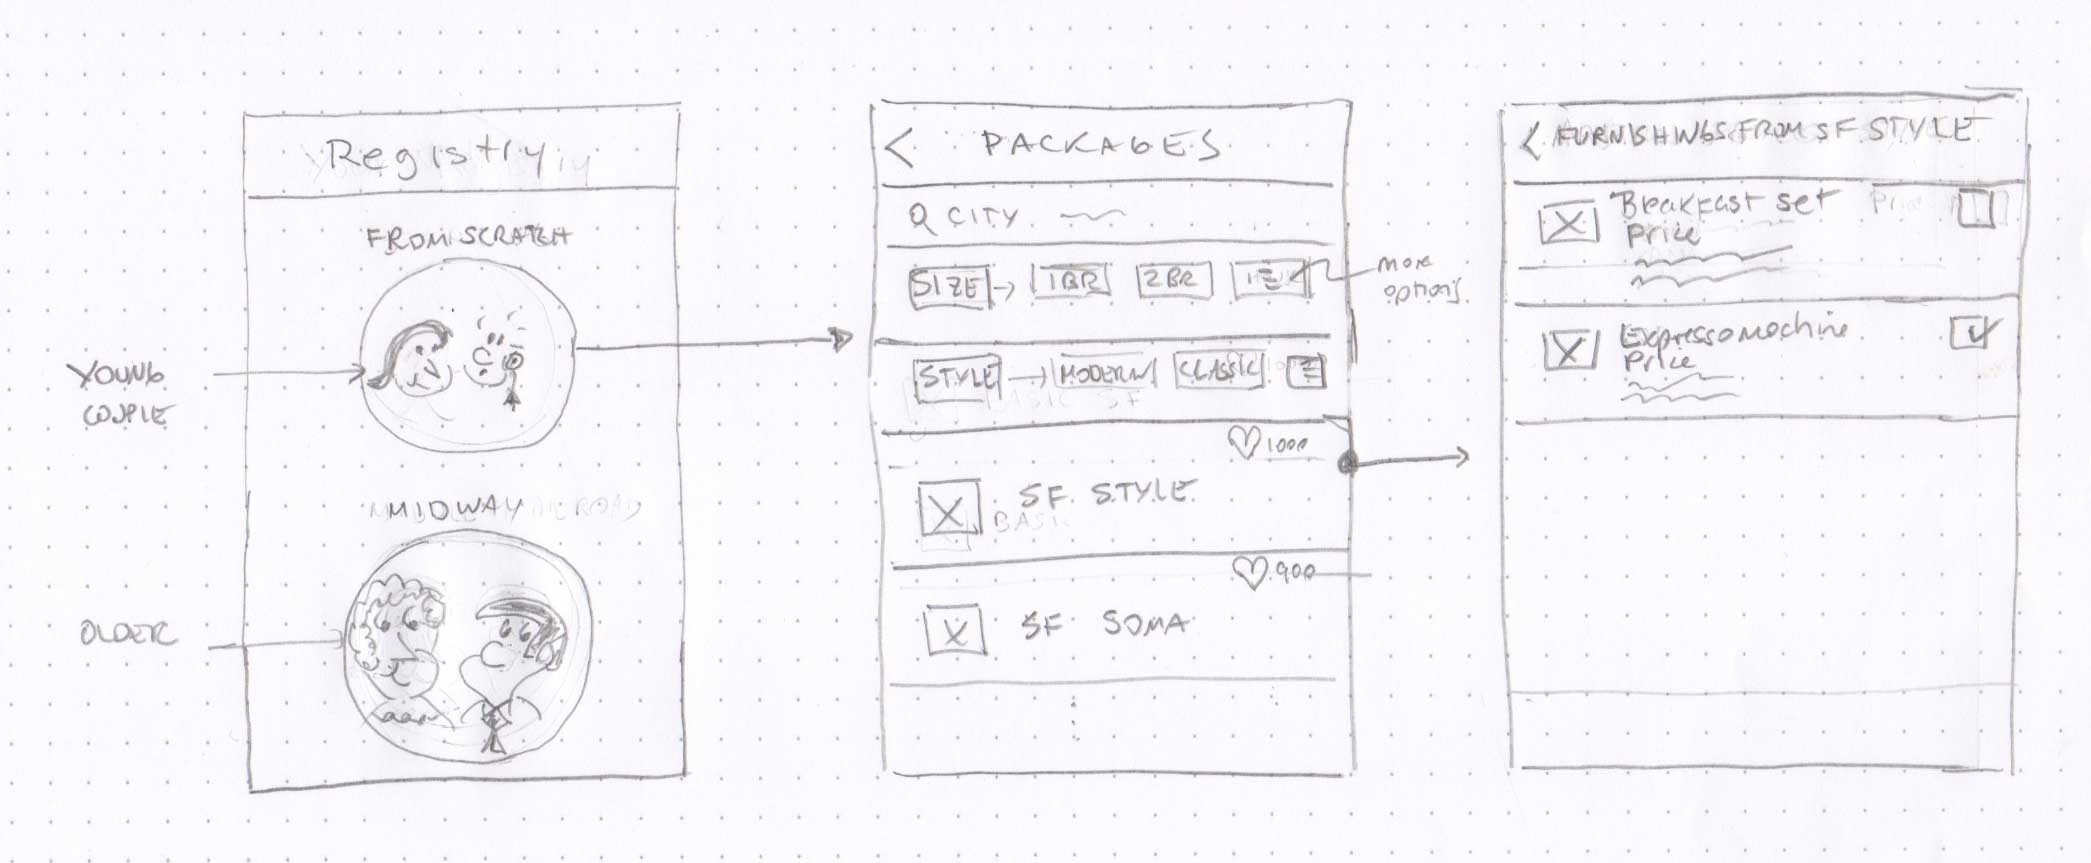 Wireframe of the solution as a mobile app